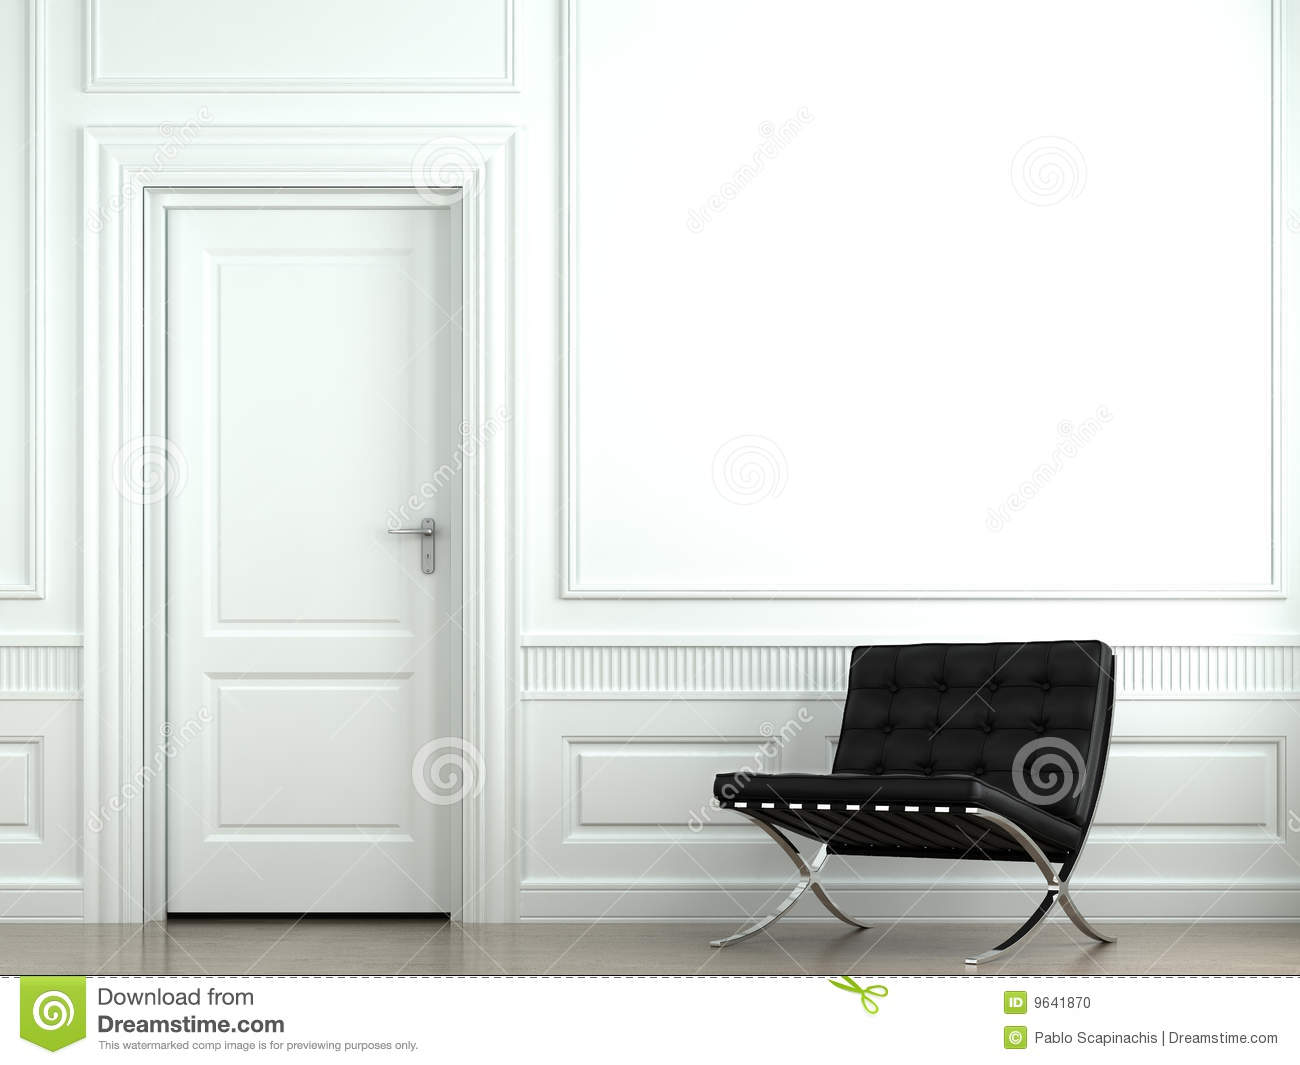 Wall Interior Design interior design classic wall stock photo - image: 9641870